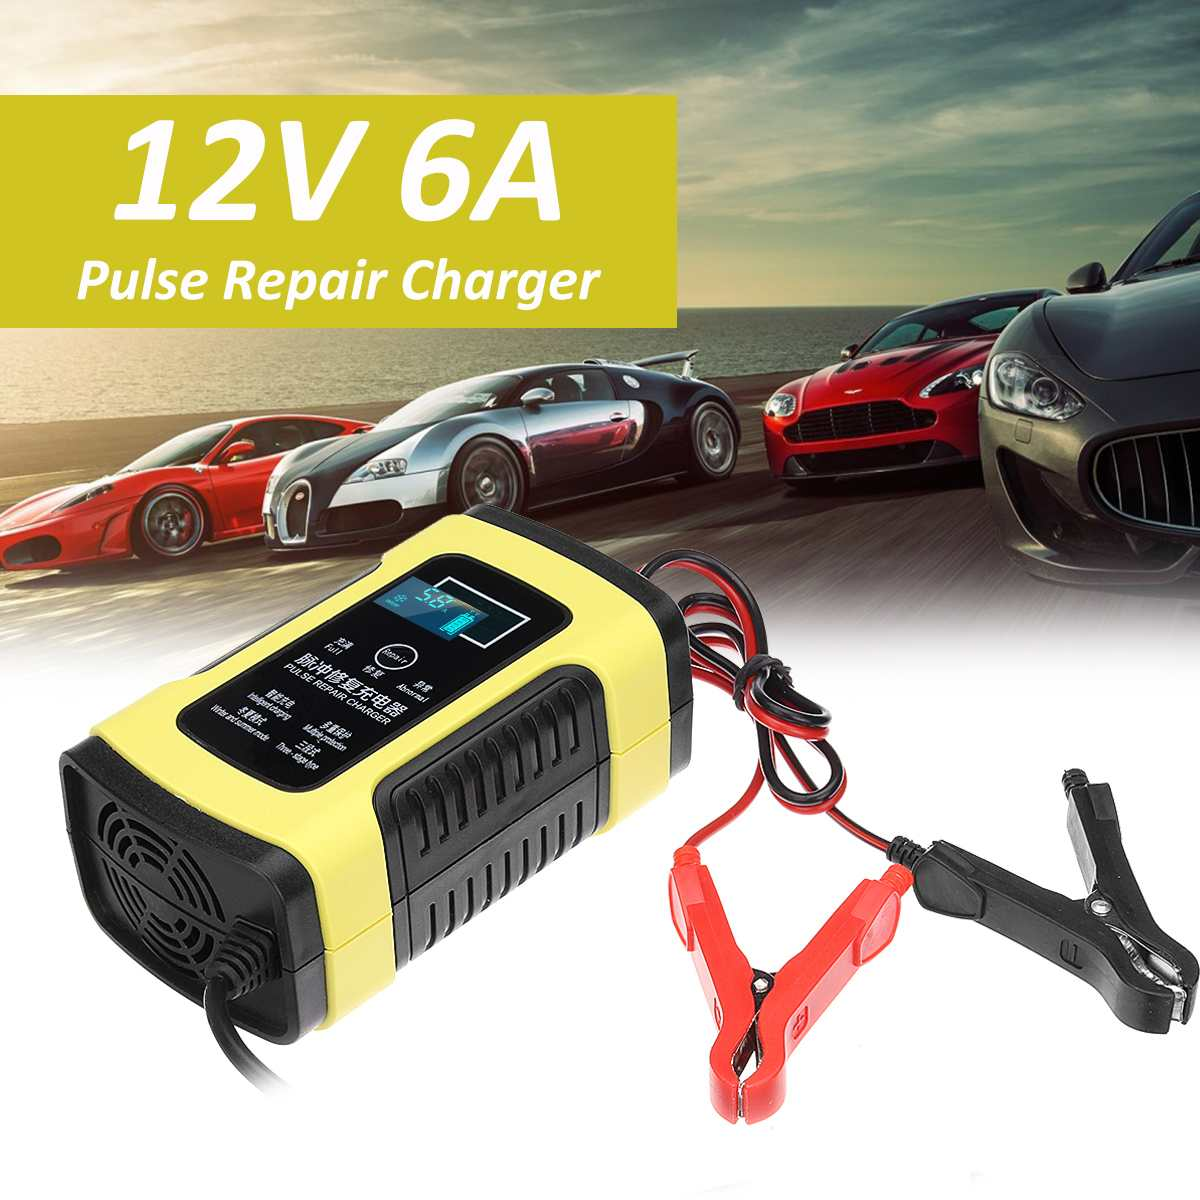 12V 6A Automatic Car Motorcycle Truck Smart Battery Charger Maintainer Desulfator Lead Acid Battery Fast Power Charging12V 6A Automatic Car Motorcycle Truck Smart Battery Charger Maintainer Desulfator Lead Acid Battery Fast Power Charging